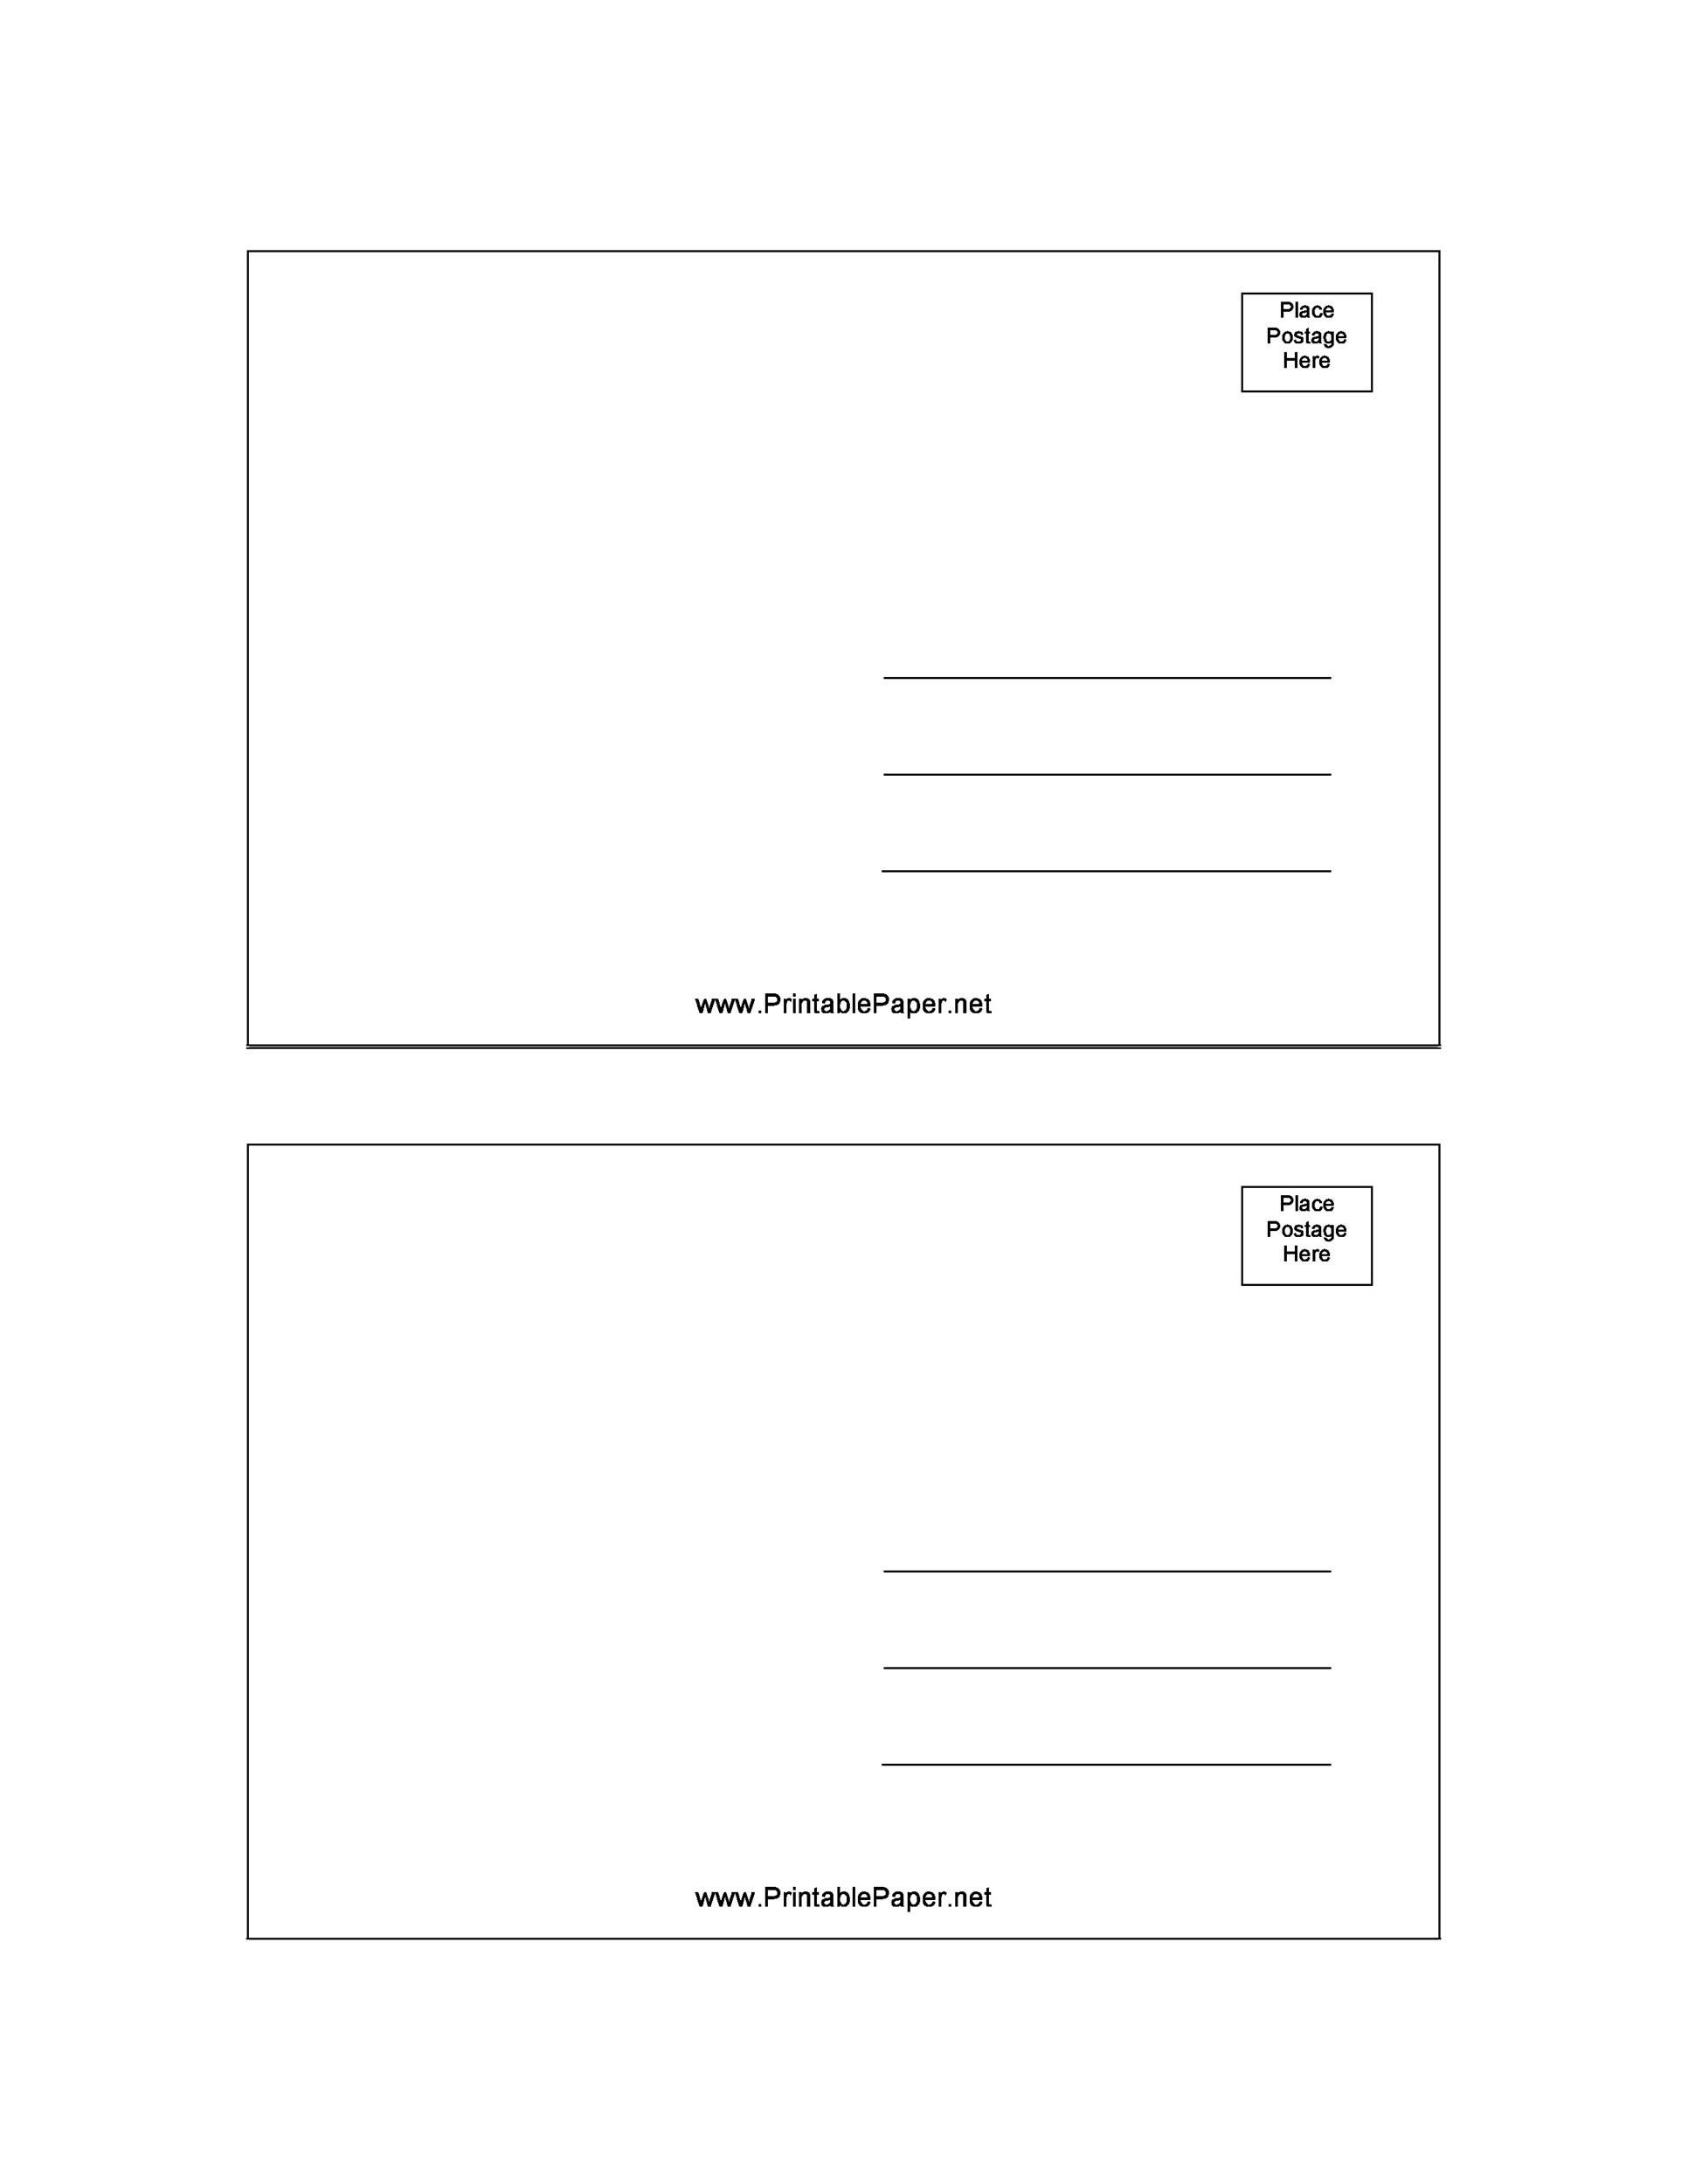 007 Fascinating Postcard Layout For Microsoft Word Picture  4 TemplateFull